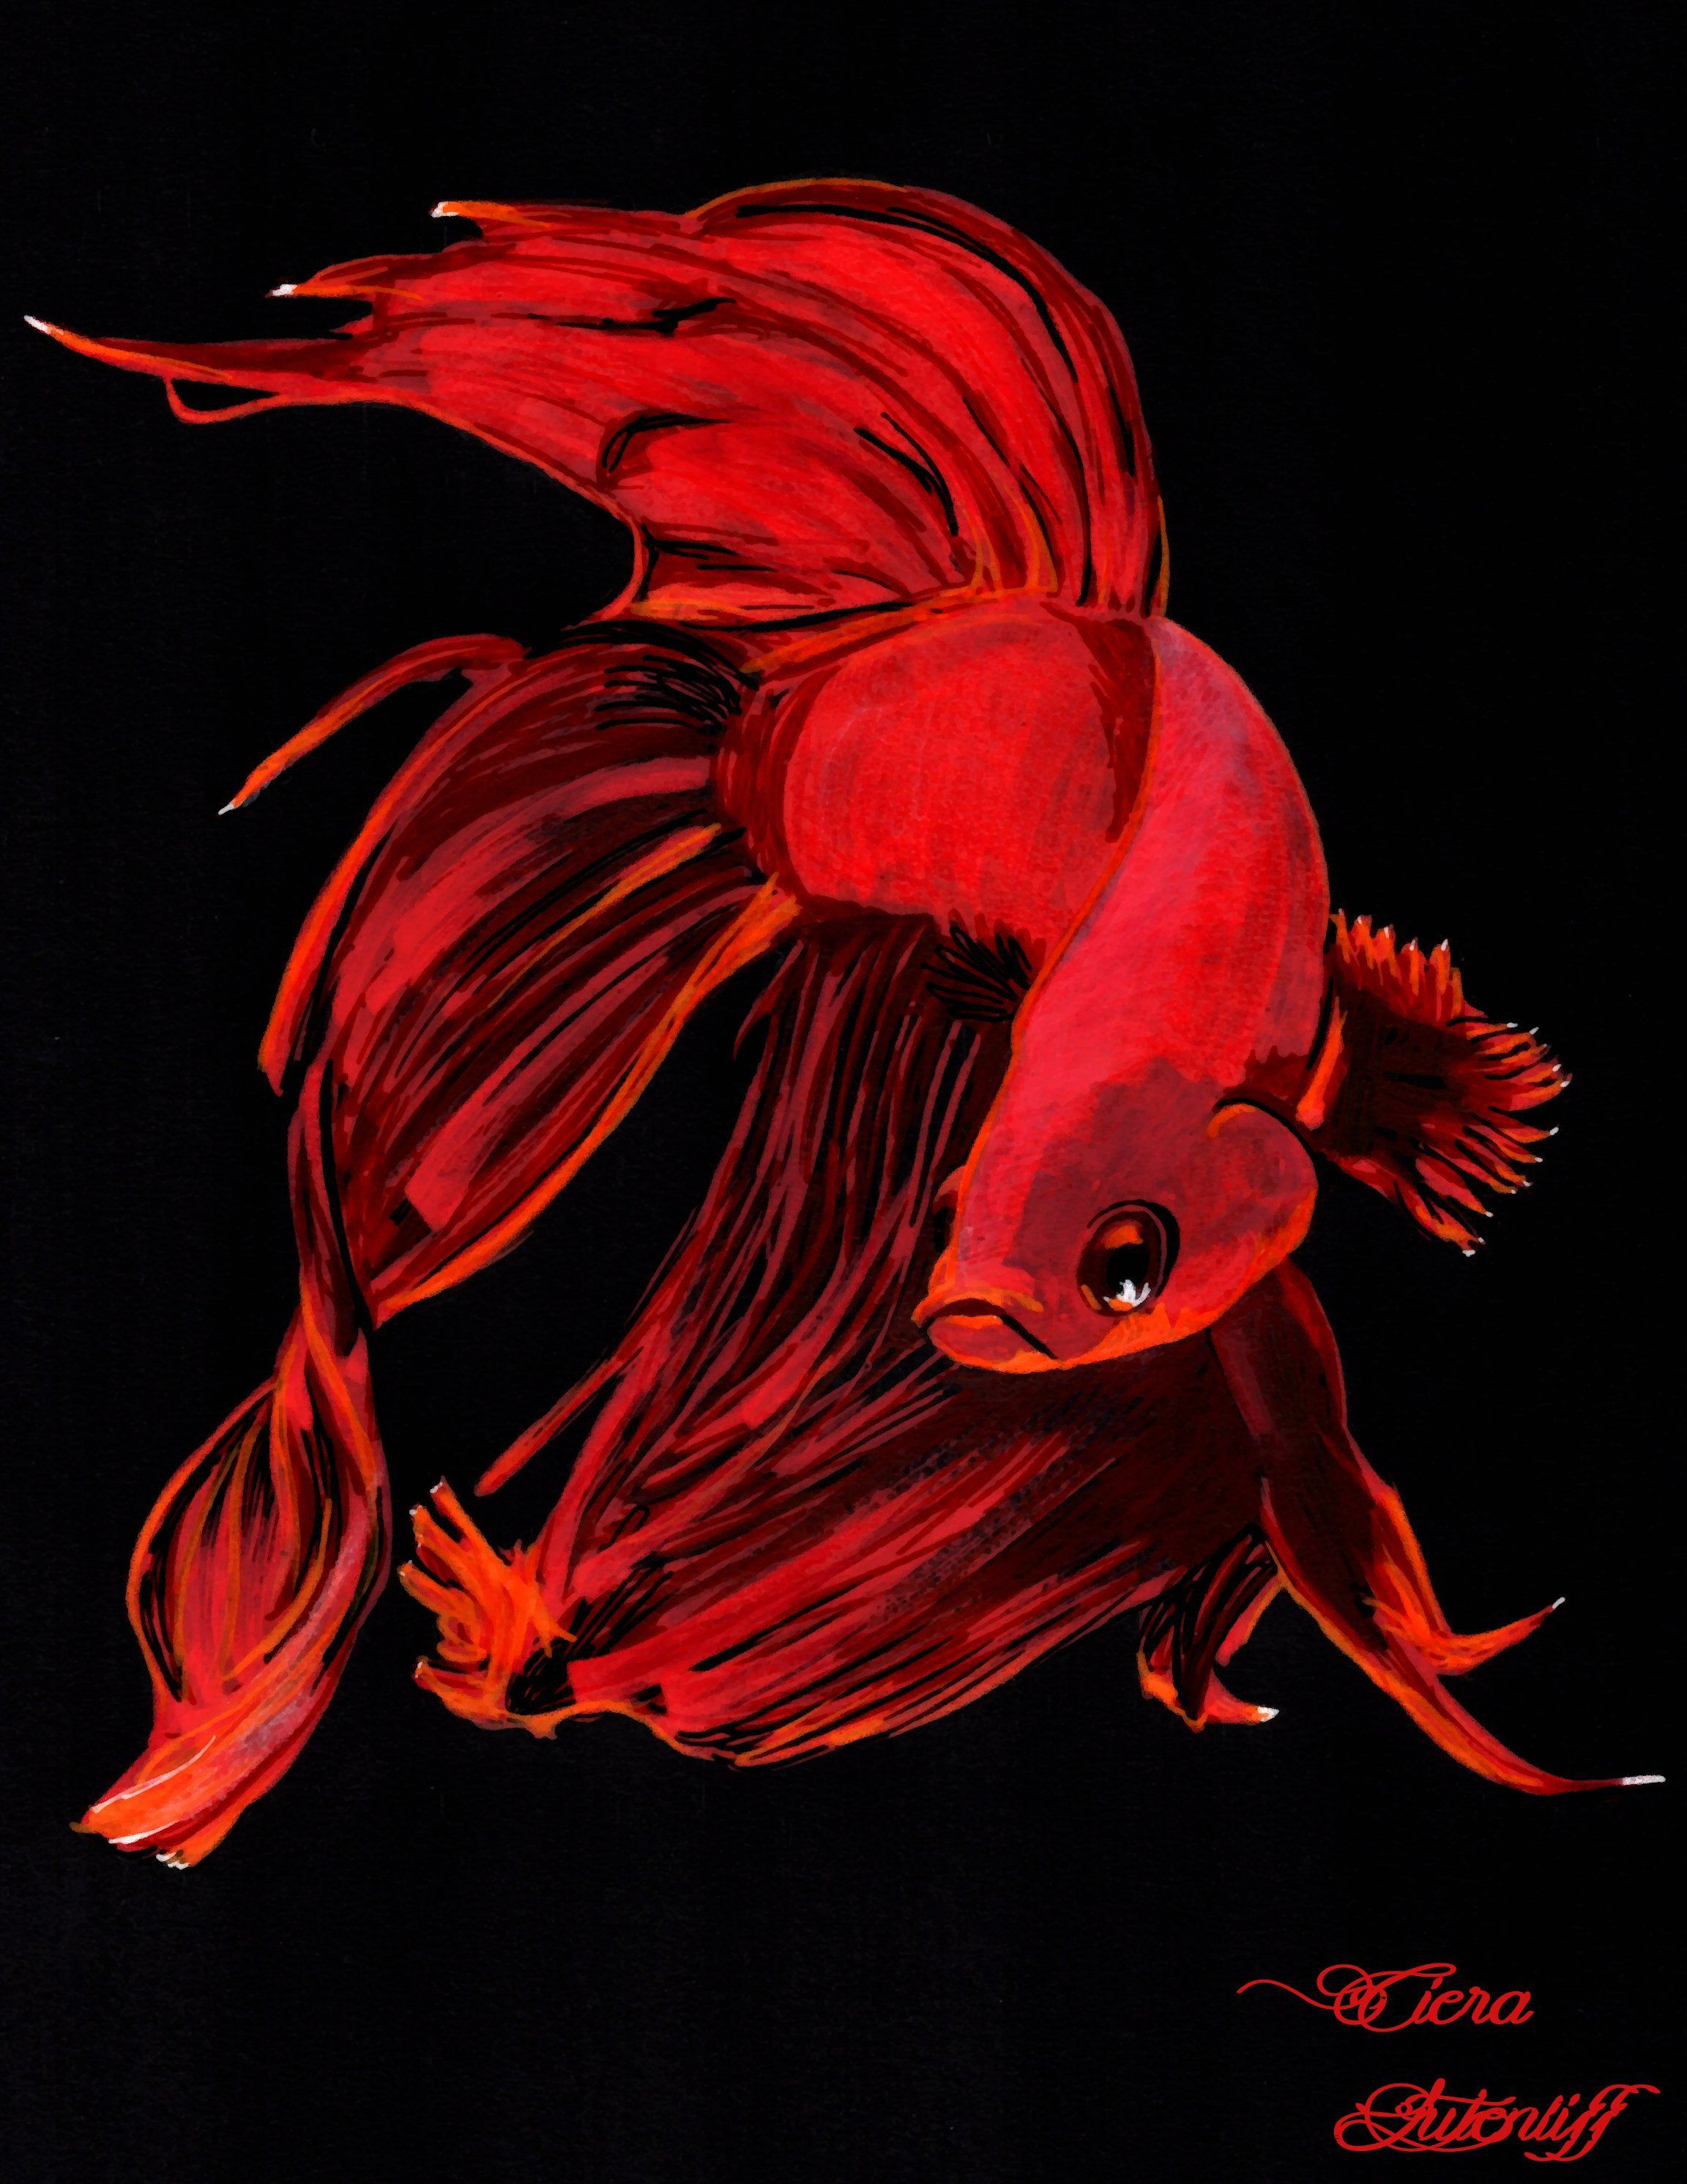 Dessin combattant poisson rouge red fish poscas drawing blabackground dessins la mine - Poissons dessin ...